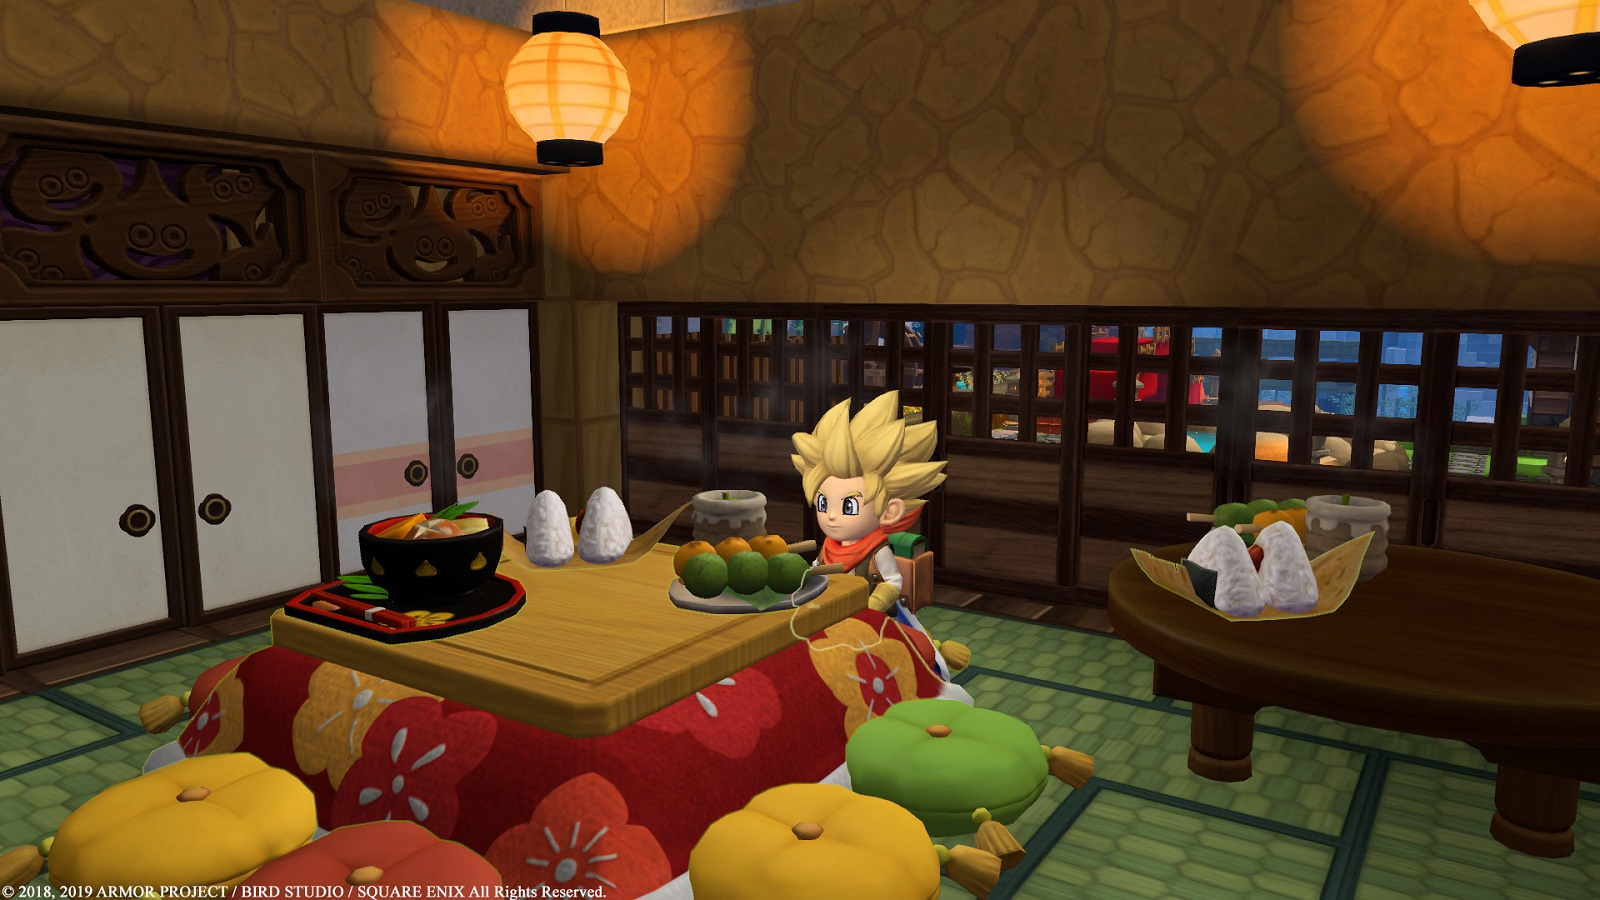 Create Even More Dragon Quest Builders 2 Gets New Season Pass Content Today Gaming Trend Dragon quest builders 2 room recipes. create even more dragon quest builders